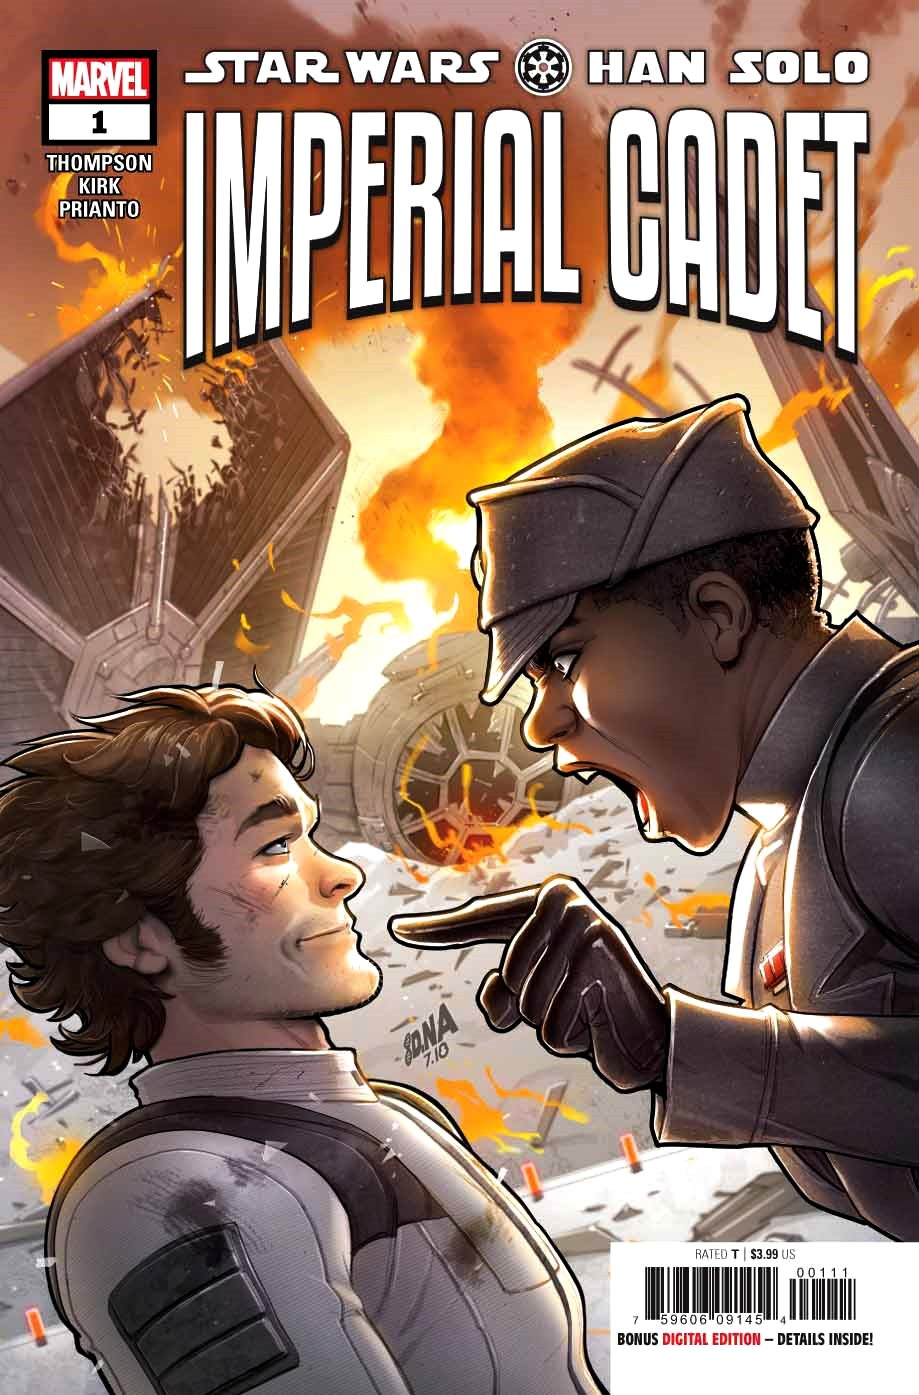 Star Wars - Han Solo: Imperial Cadet (2018) #1 (of 5) David Nakayama Cover